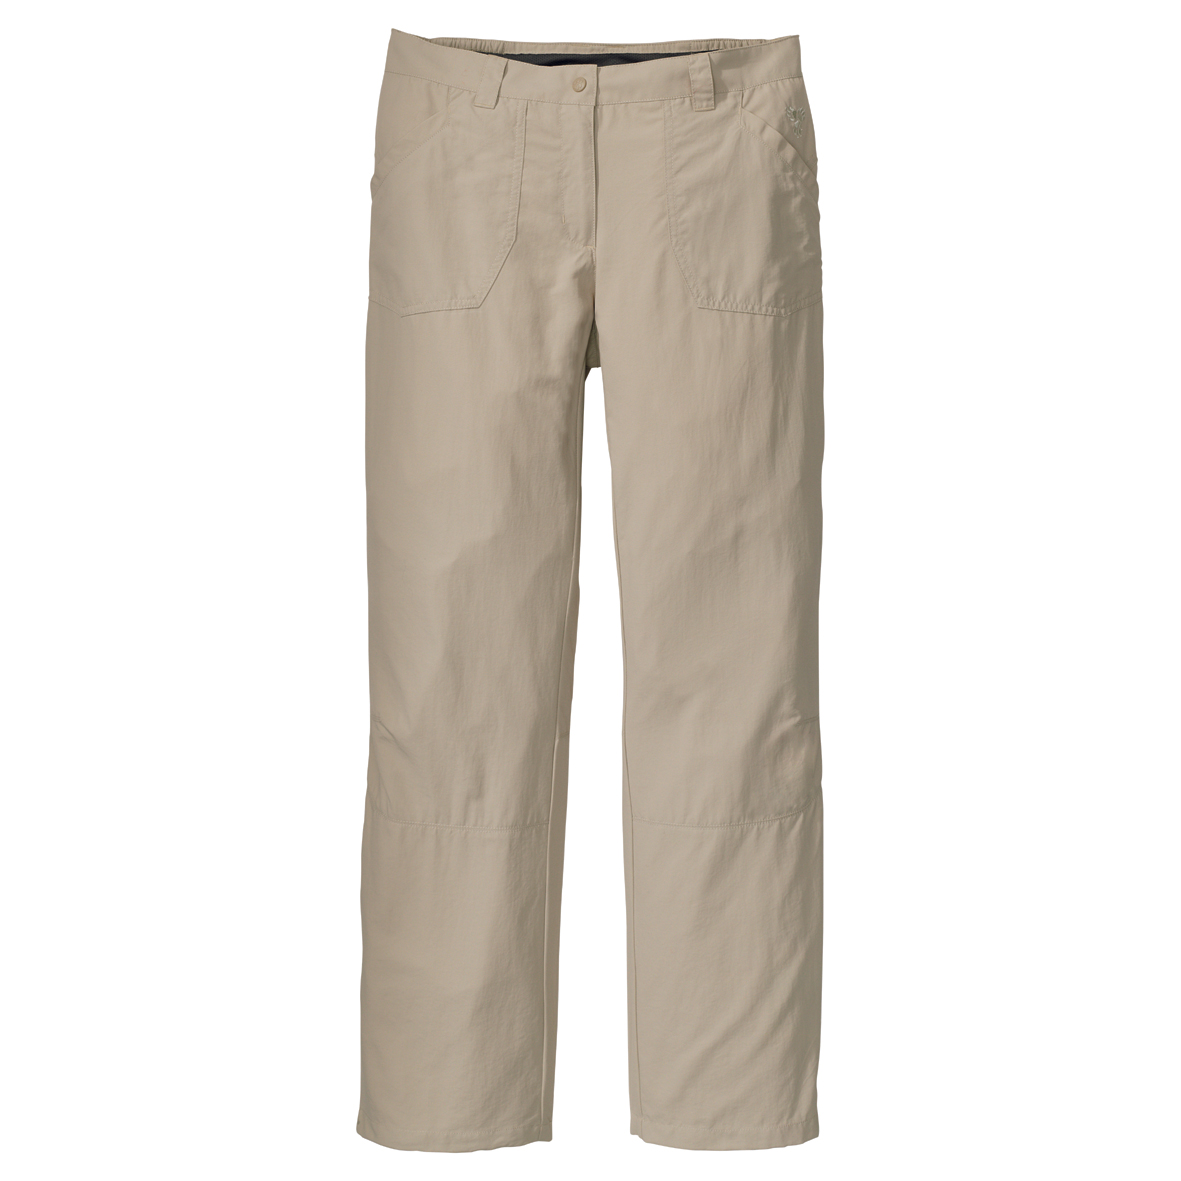 JACK WOLFSKIN WOMEN MOSQUITO SAFARI PANTS PURE SANDS